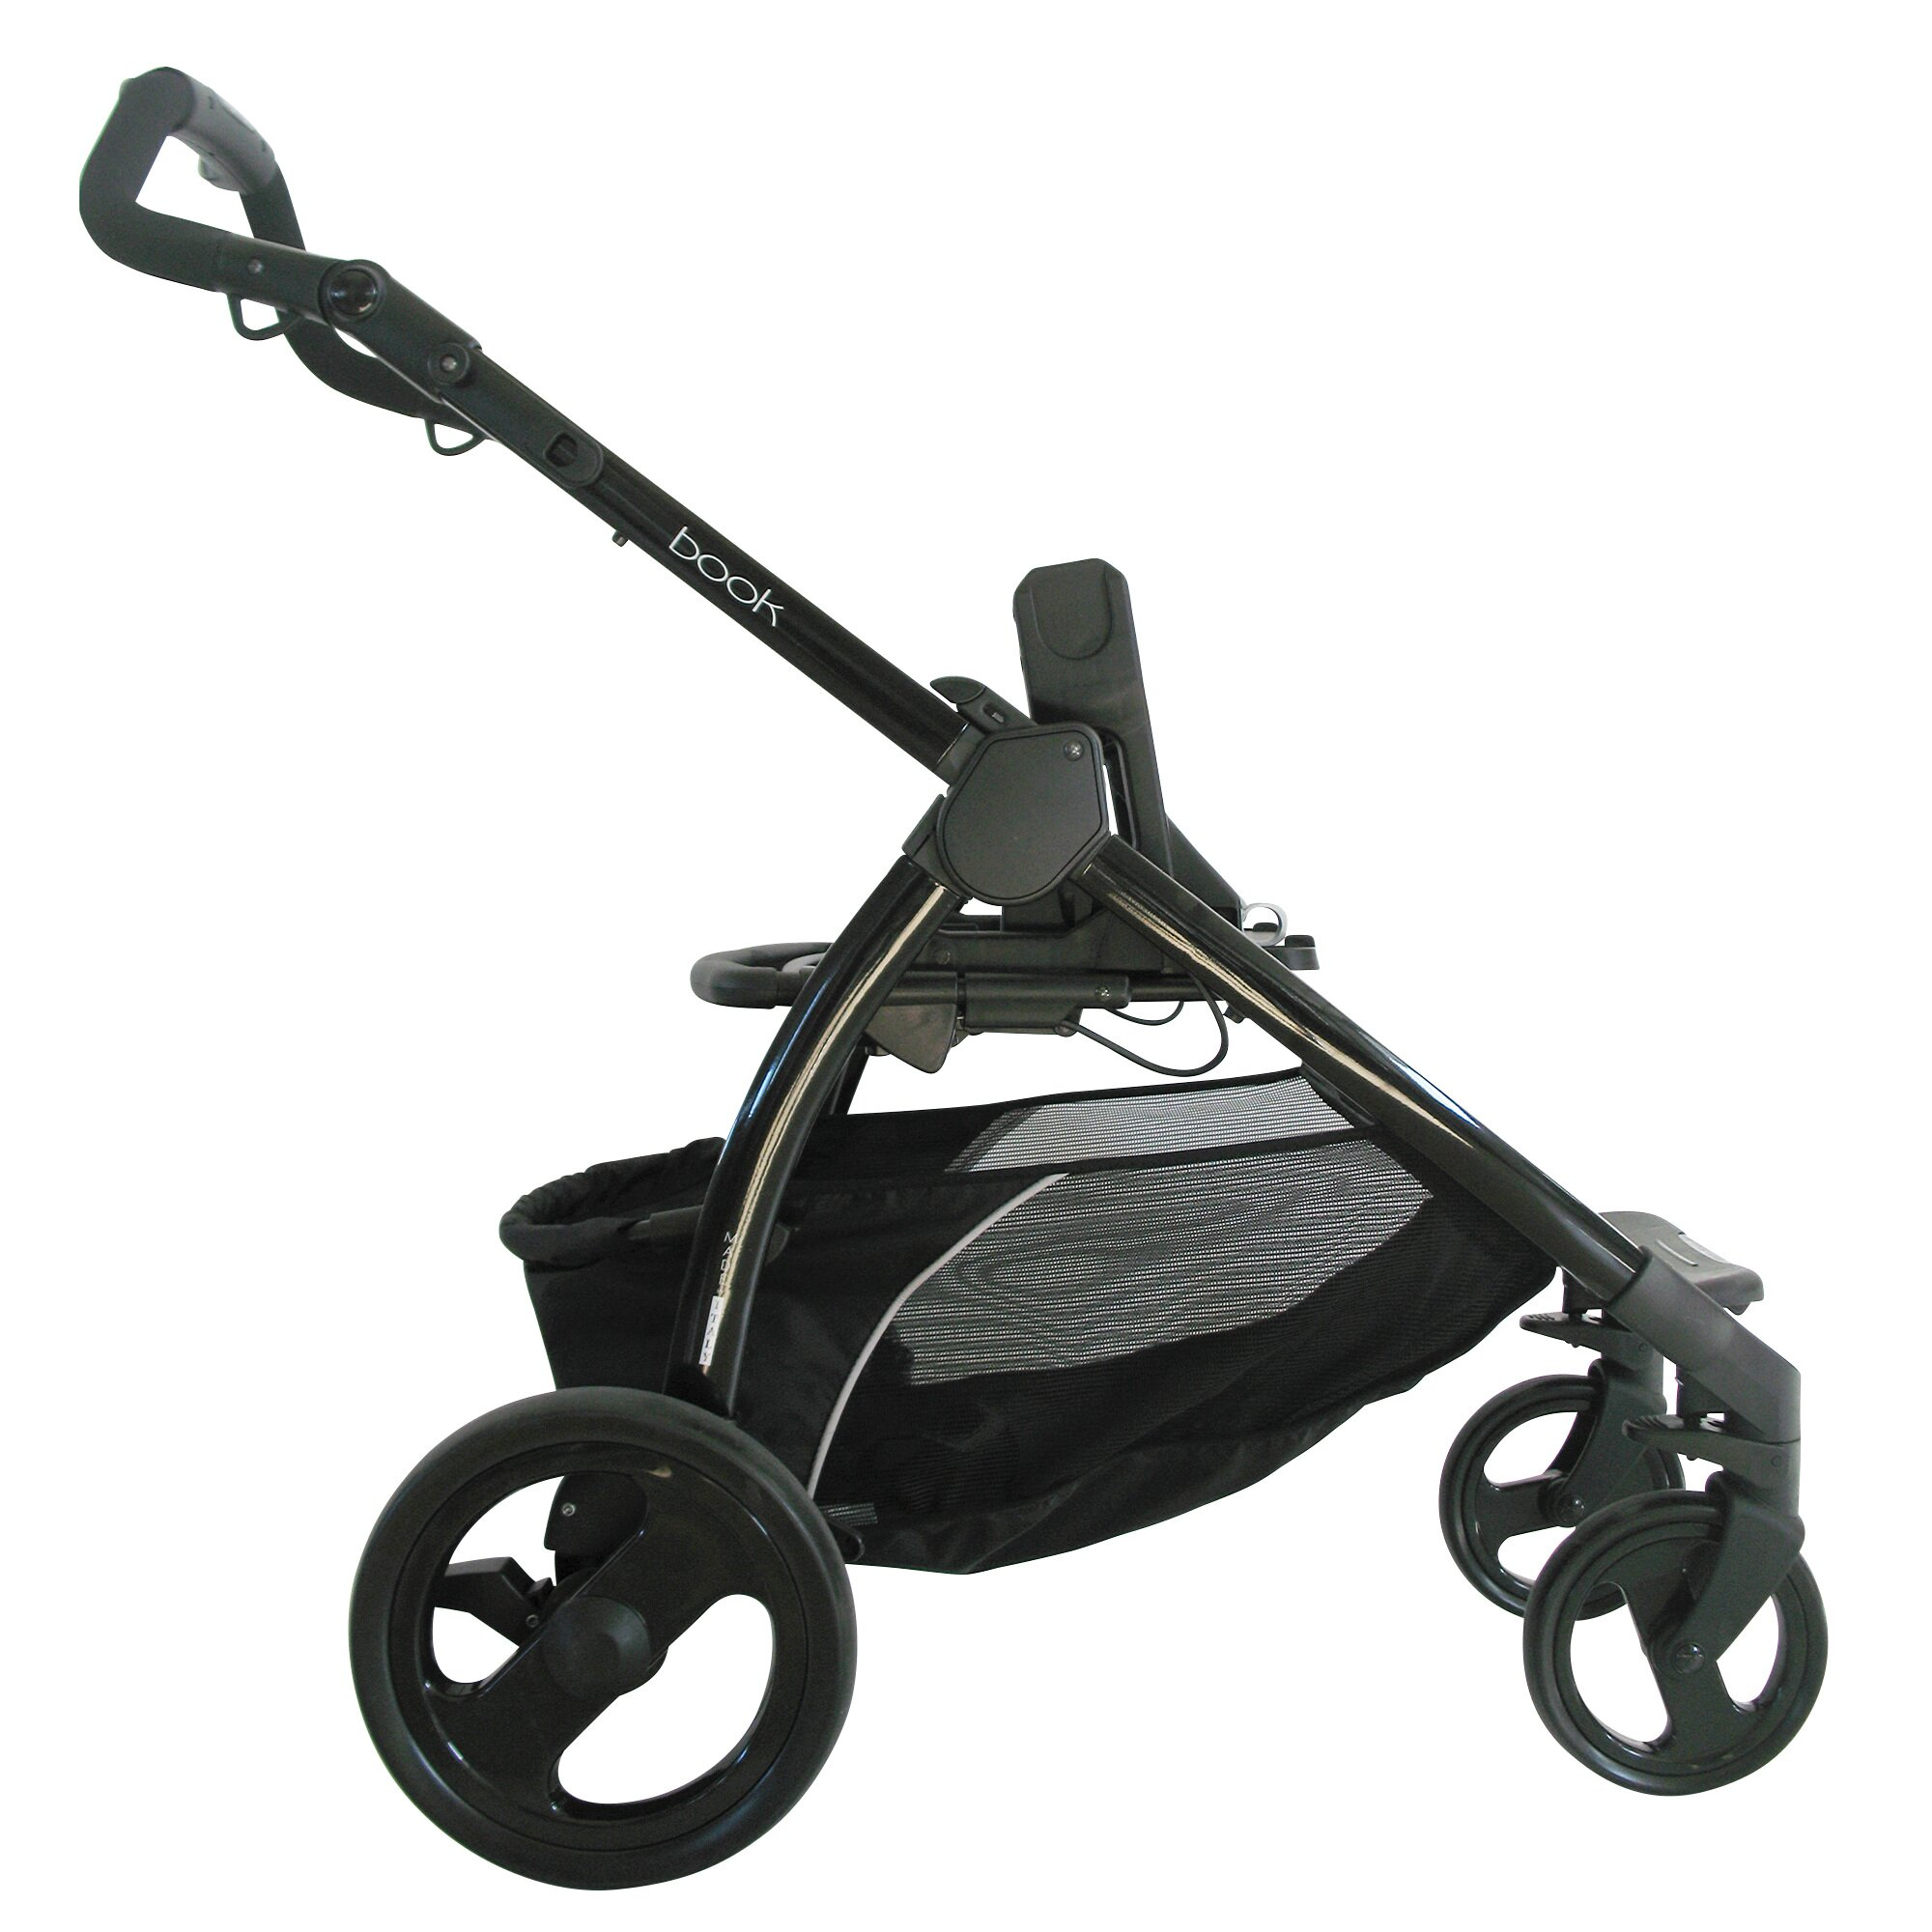 peg-perego-maxi-cosi-cybex-adapter-fur-book-plus-book-pop-up-switch-culla-duette-pop-up-triplette-pop-up-book-51-book-s-switch-easy-drive-